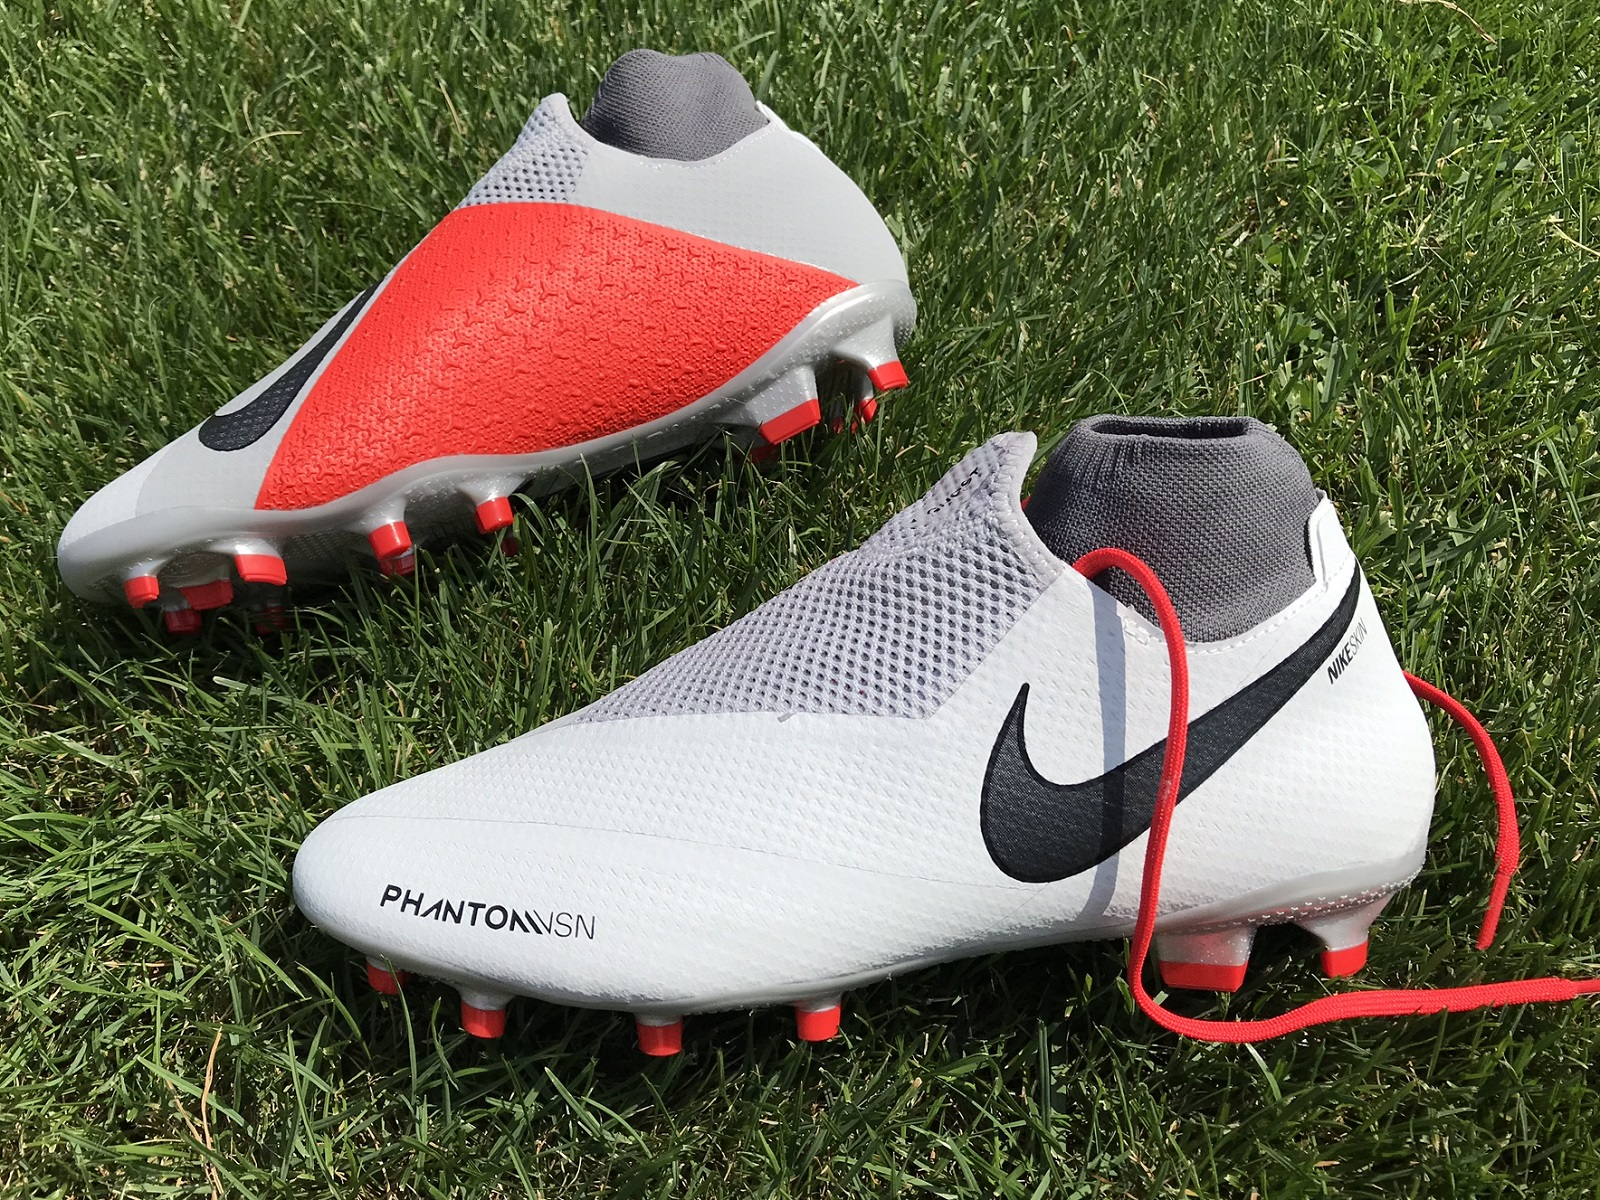 86b73eef0 Nike Phantom Vision Pro DF Boot Review | Soccer Cleats 101